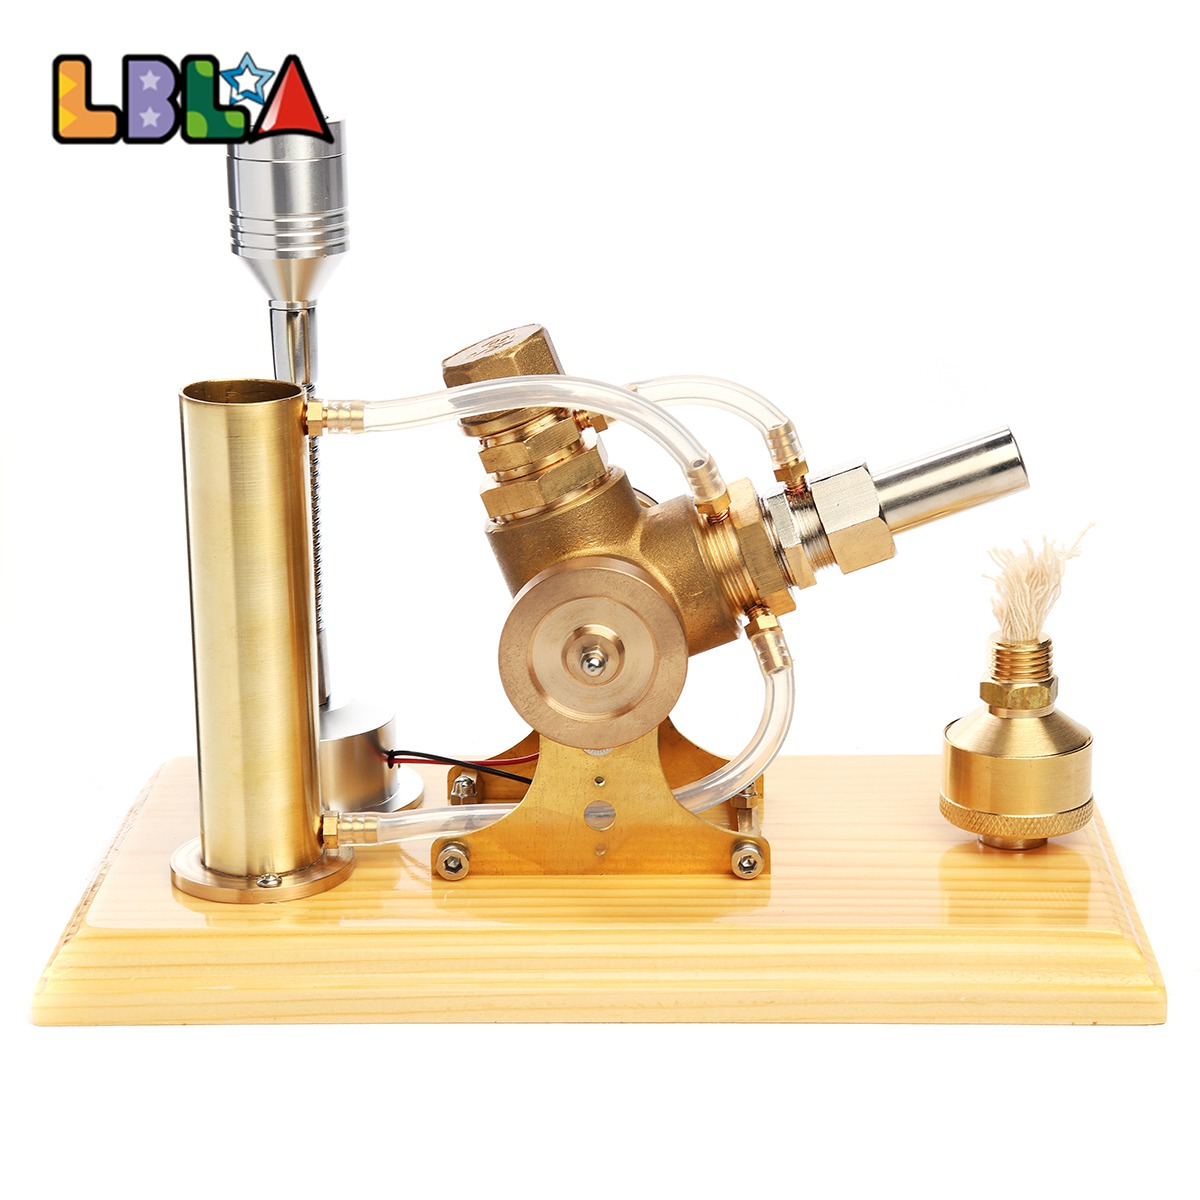 LBLA Hot Air Stirling Engine Motor Model Educational Toy Kit Wood Base W/LED Light Educational Science Toy Gift For Children цена 2017